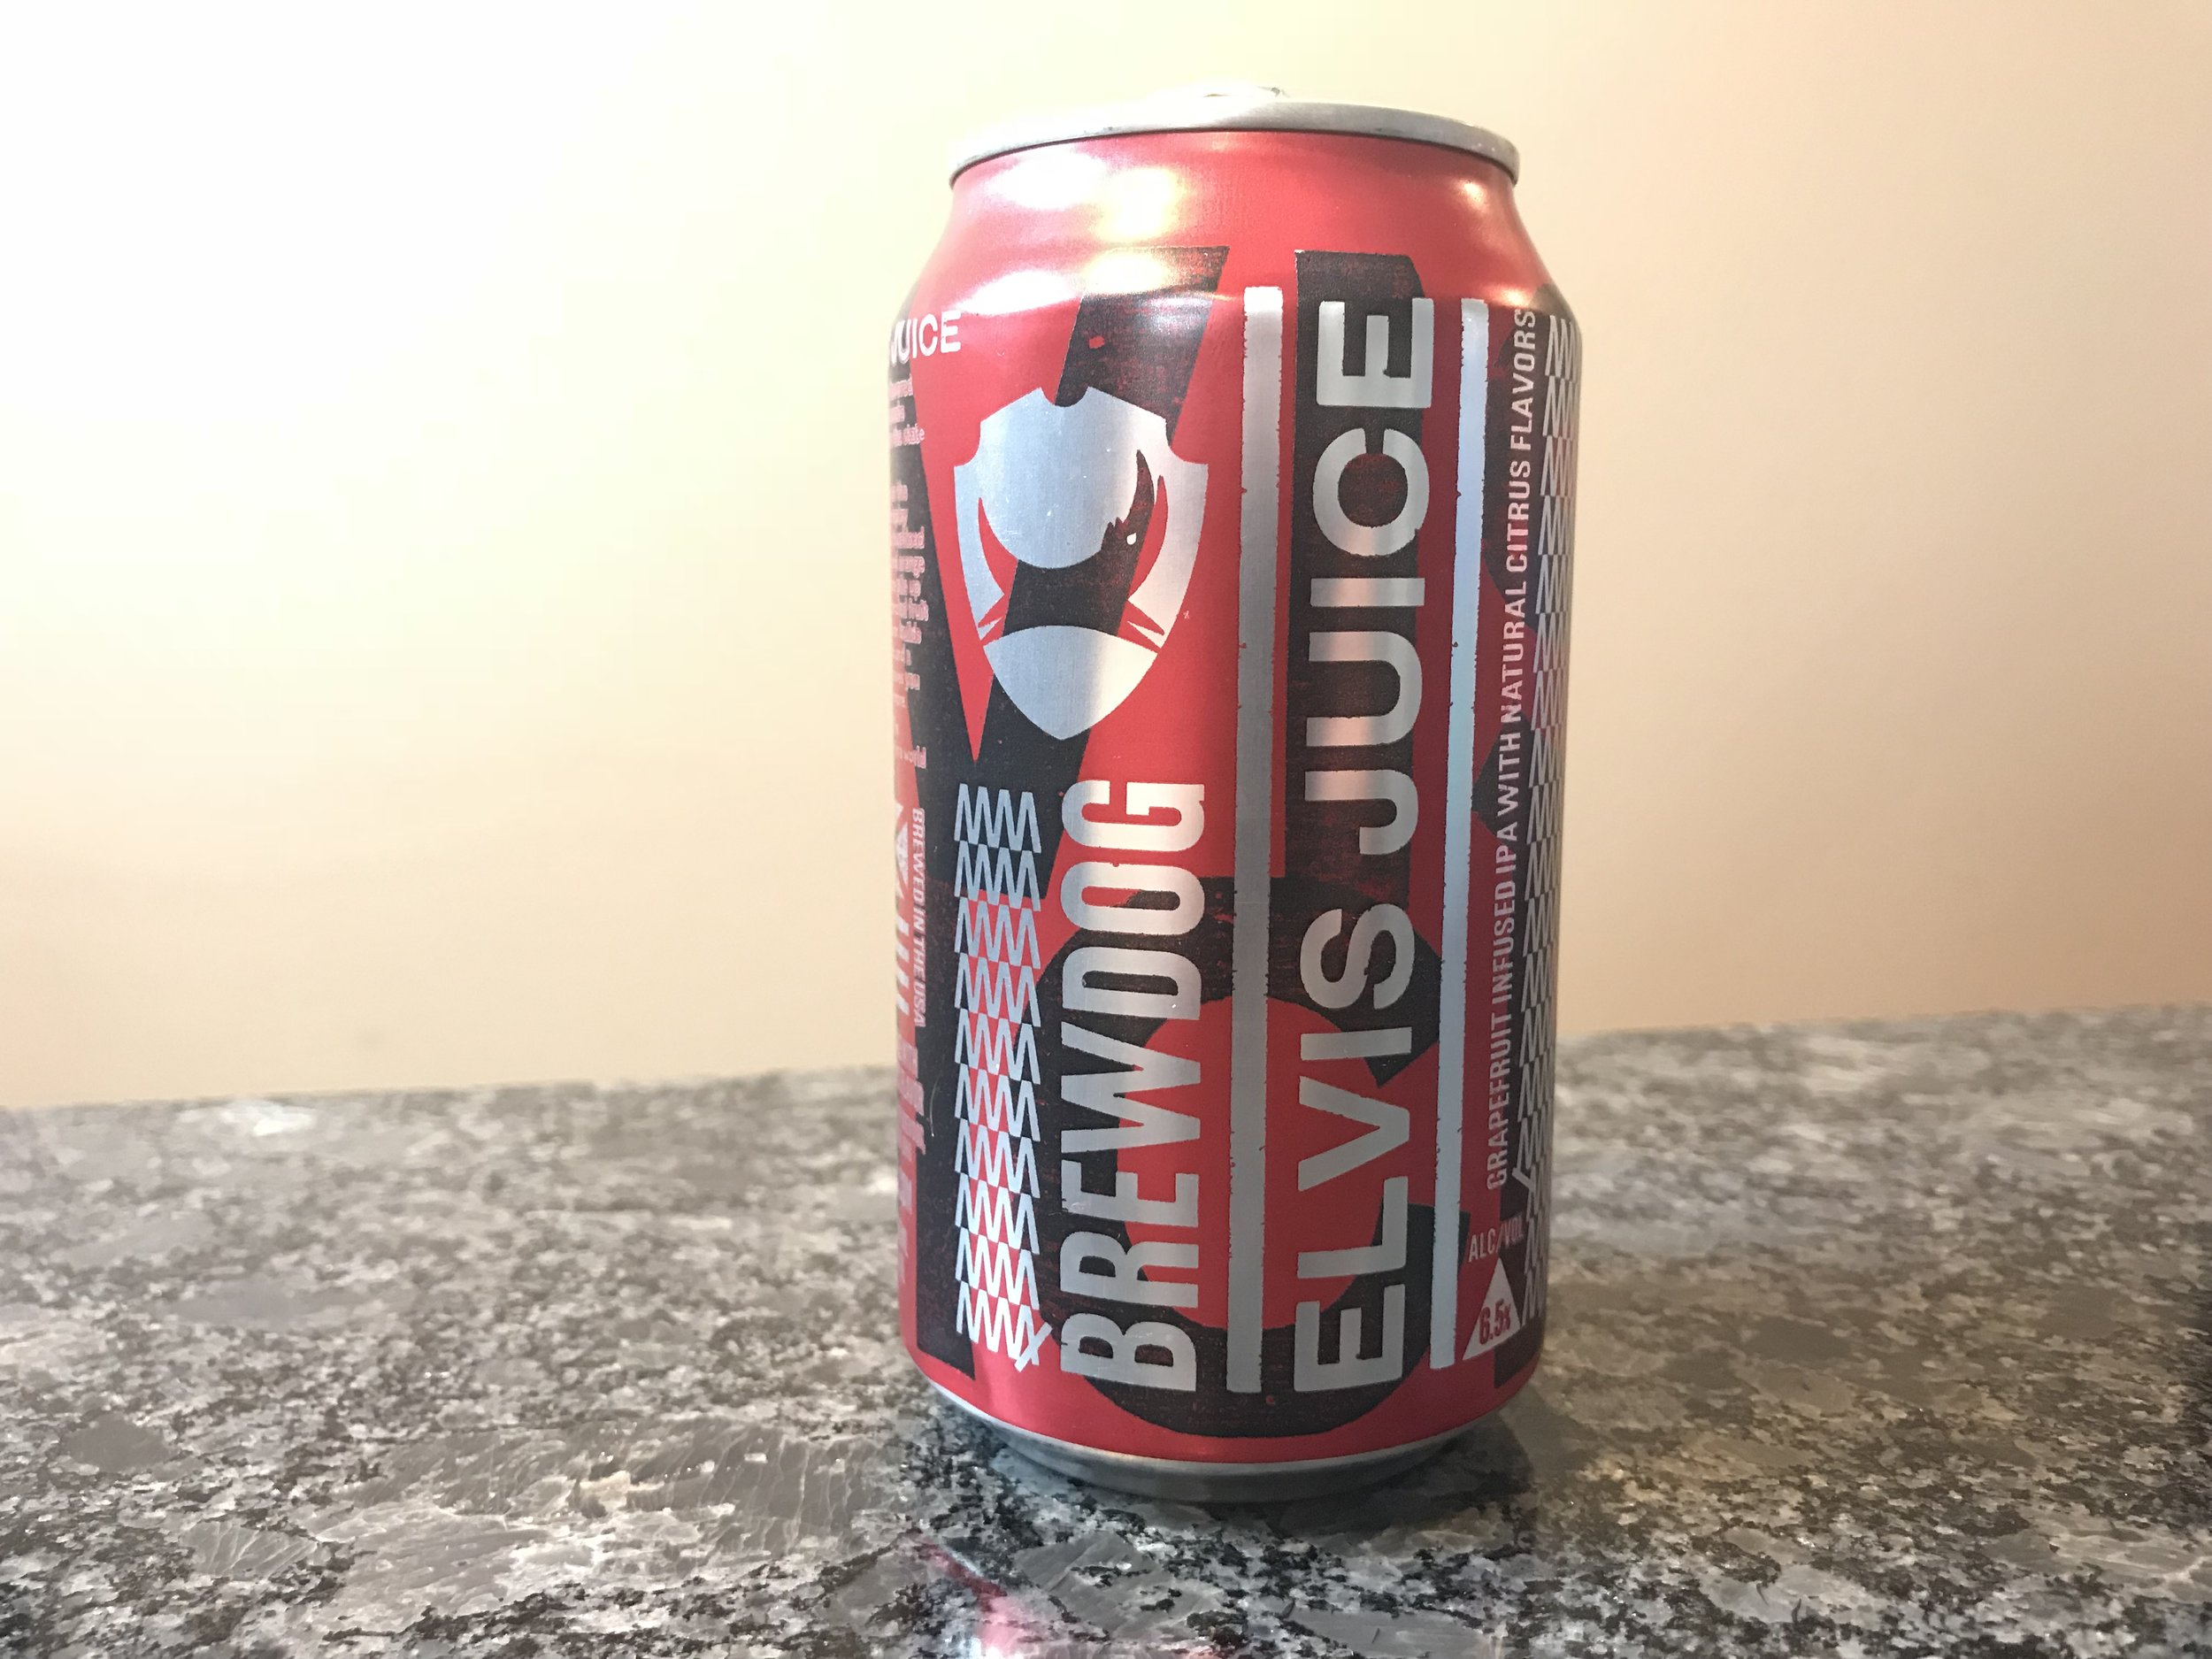 BrewDog Elvis Juice   6.5% ABV 40 IBUs. Elvis Juice is an American IPA. Elvis Juice is on the bitter edge that will push your citrus tolerance to the brink. Click on the image to see my full review of this craft beer.